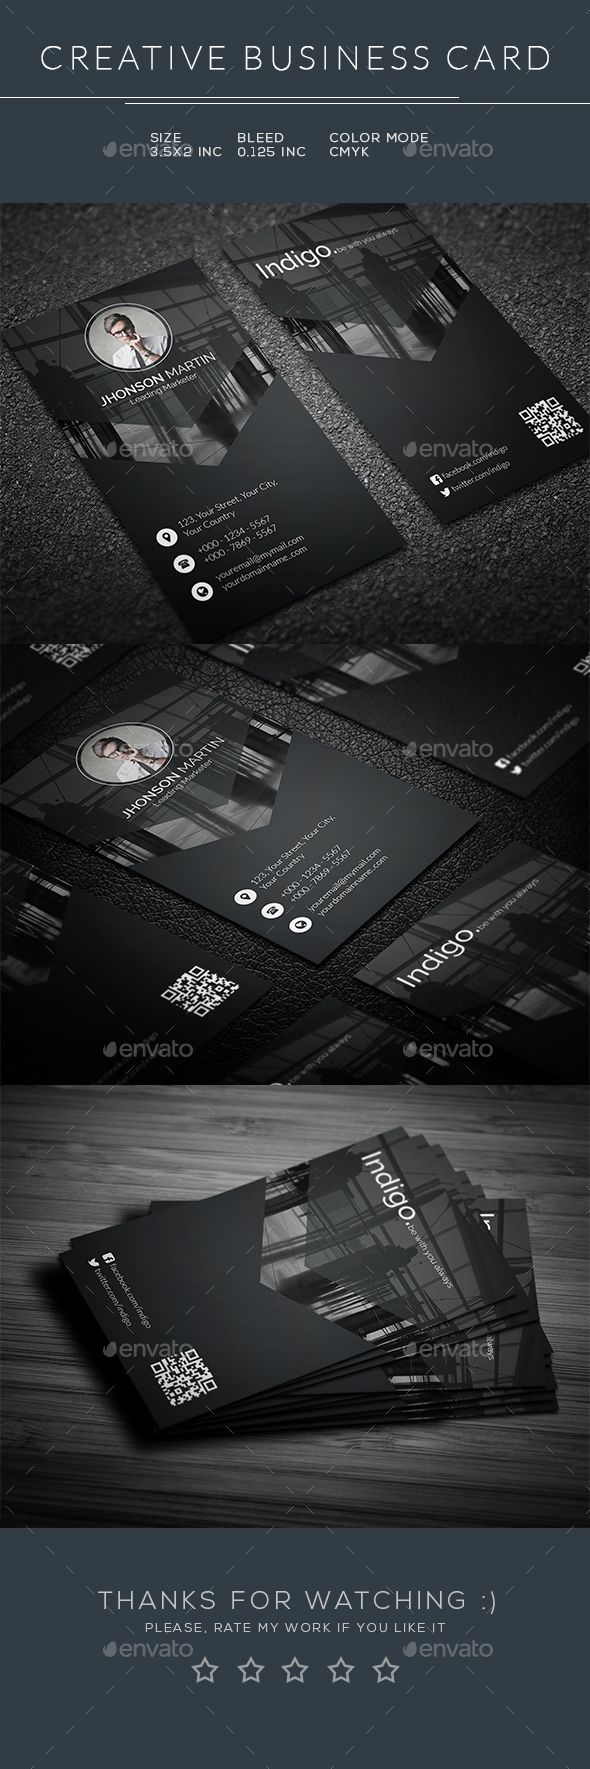 Business Card — Photoshop PSD #elegant #green • Available here → https://graphicriver.net/item/business-card/17303895?ref=pxcr